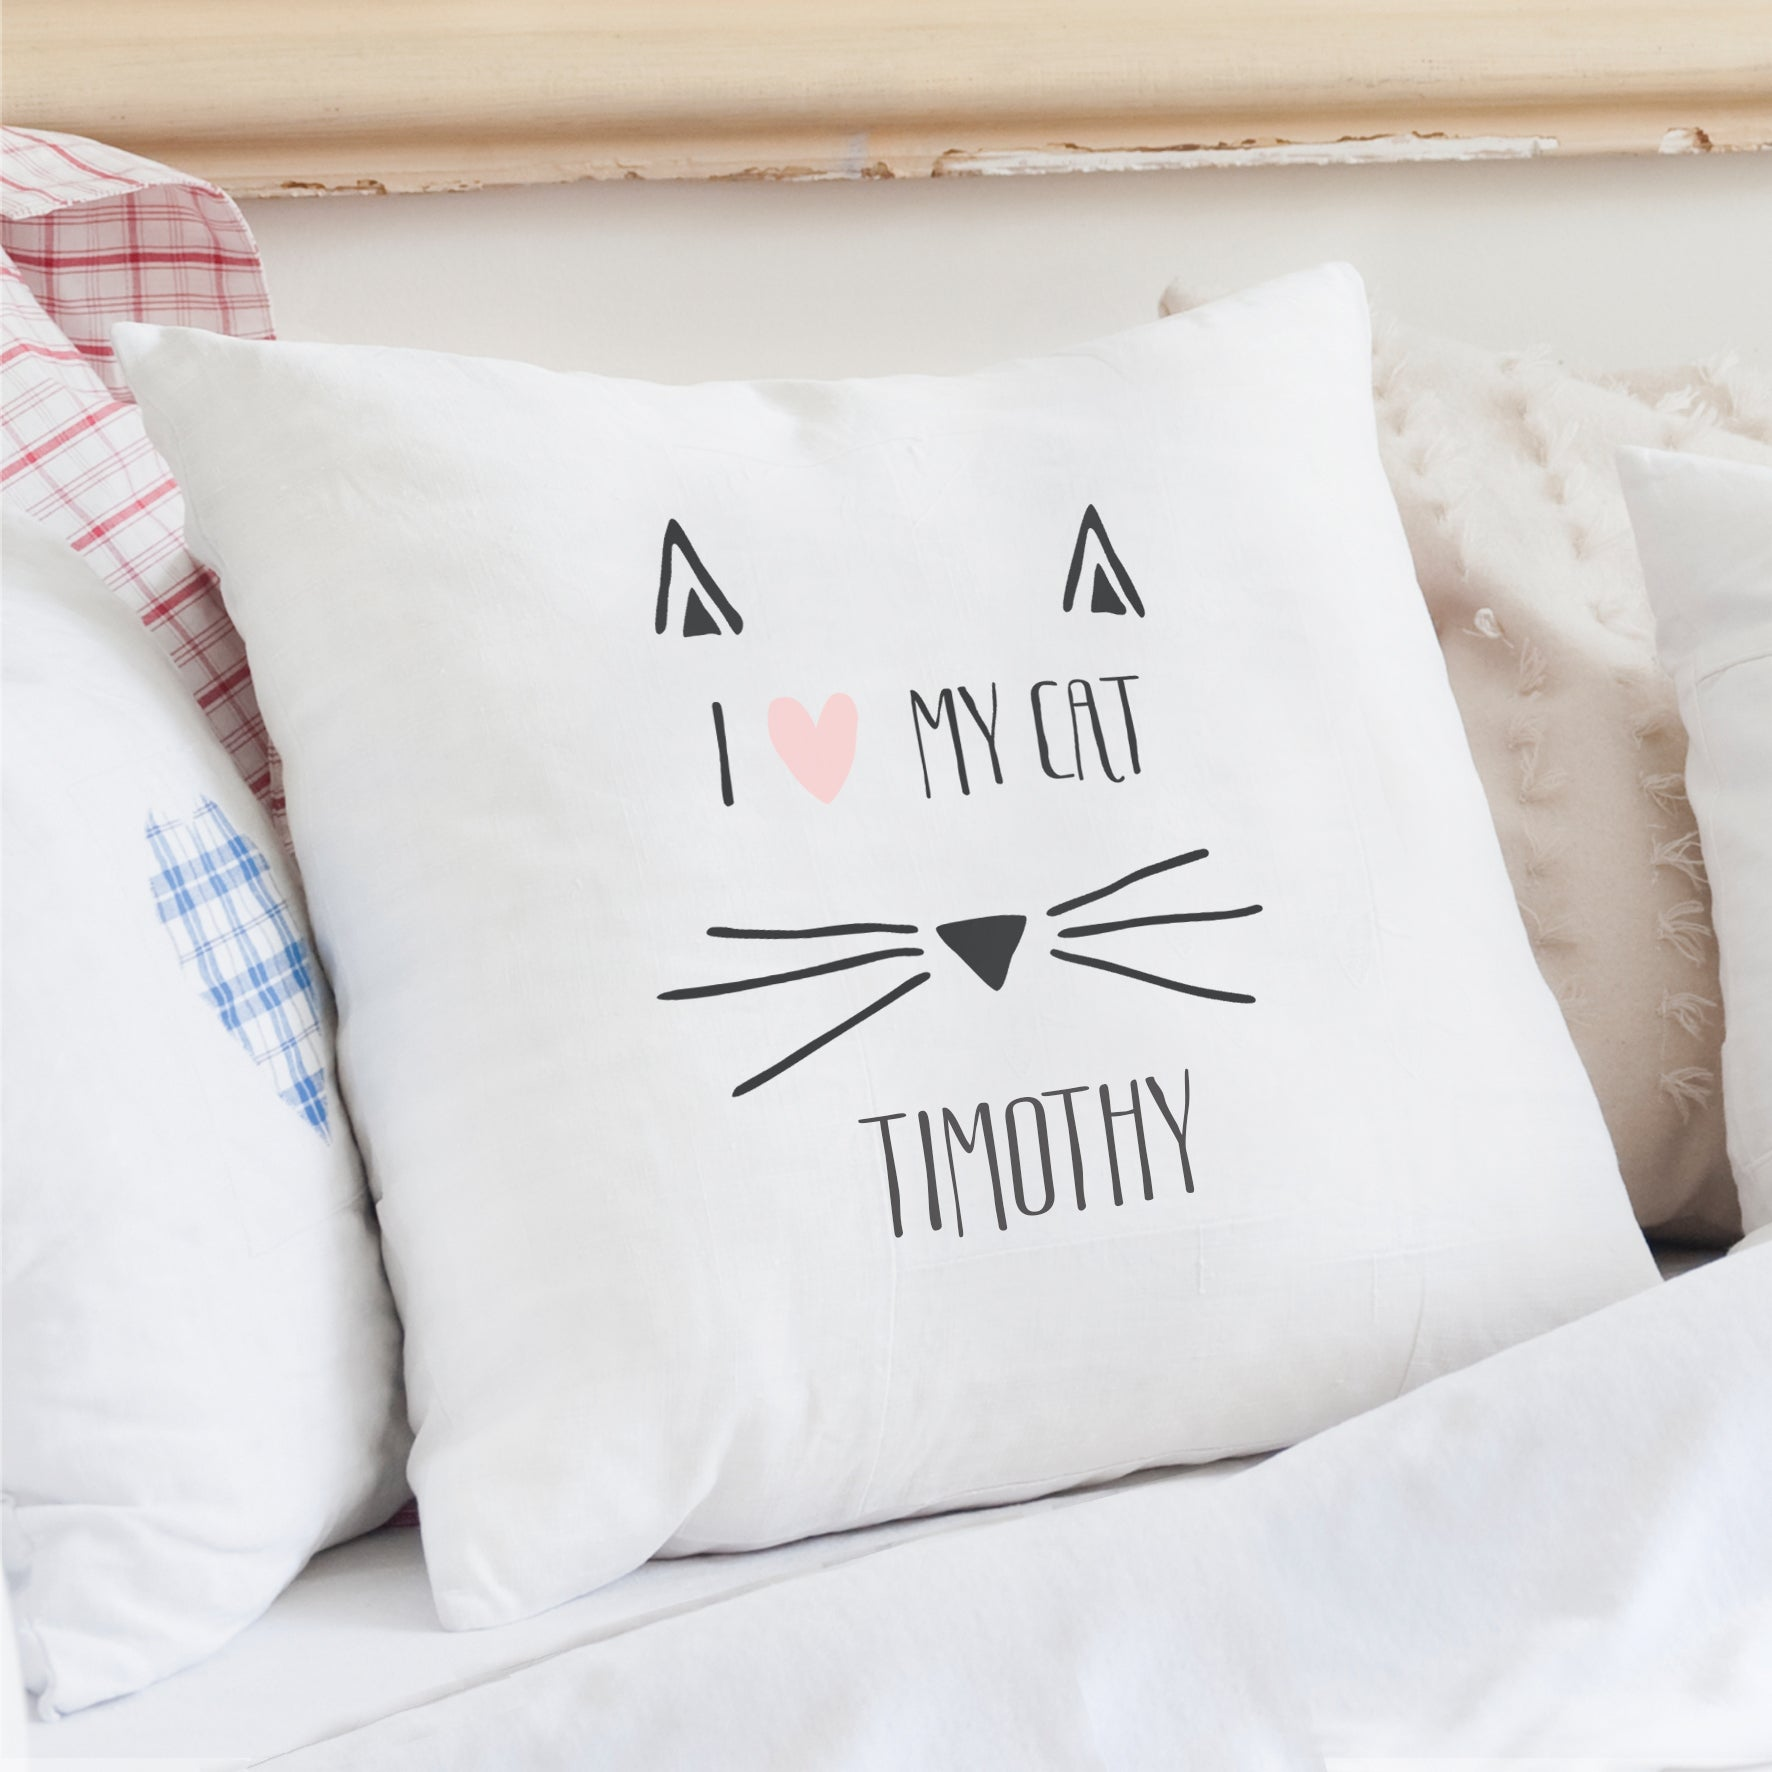 "Image of a cushion cover which can be personalised with ""I love my cat"" and a name of your choice"